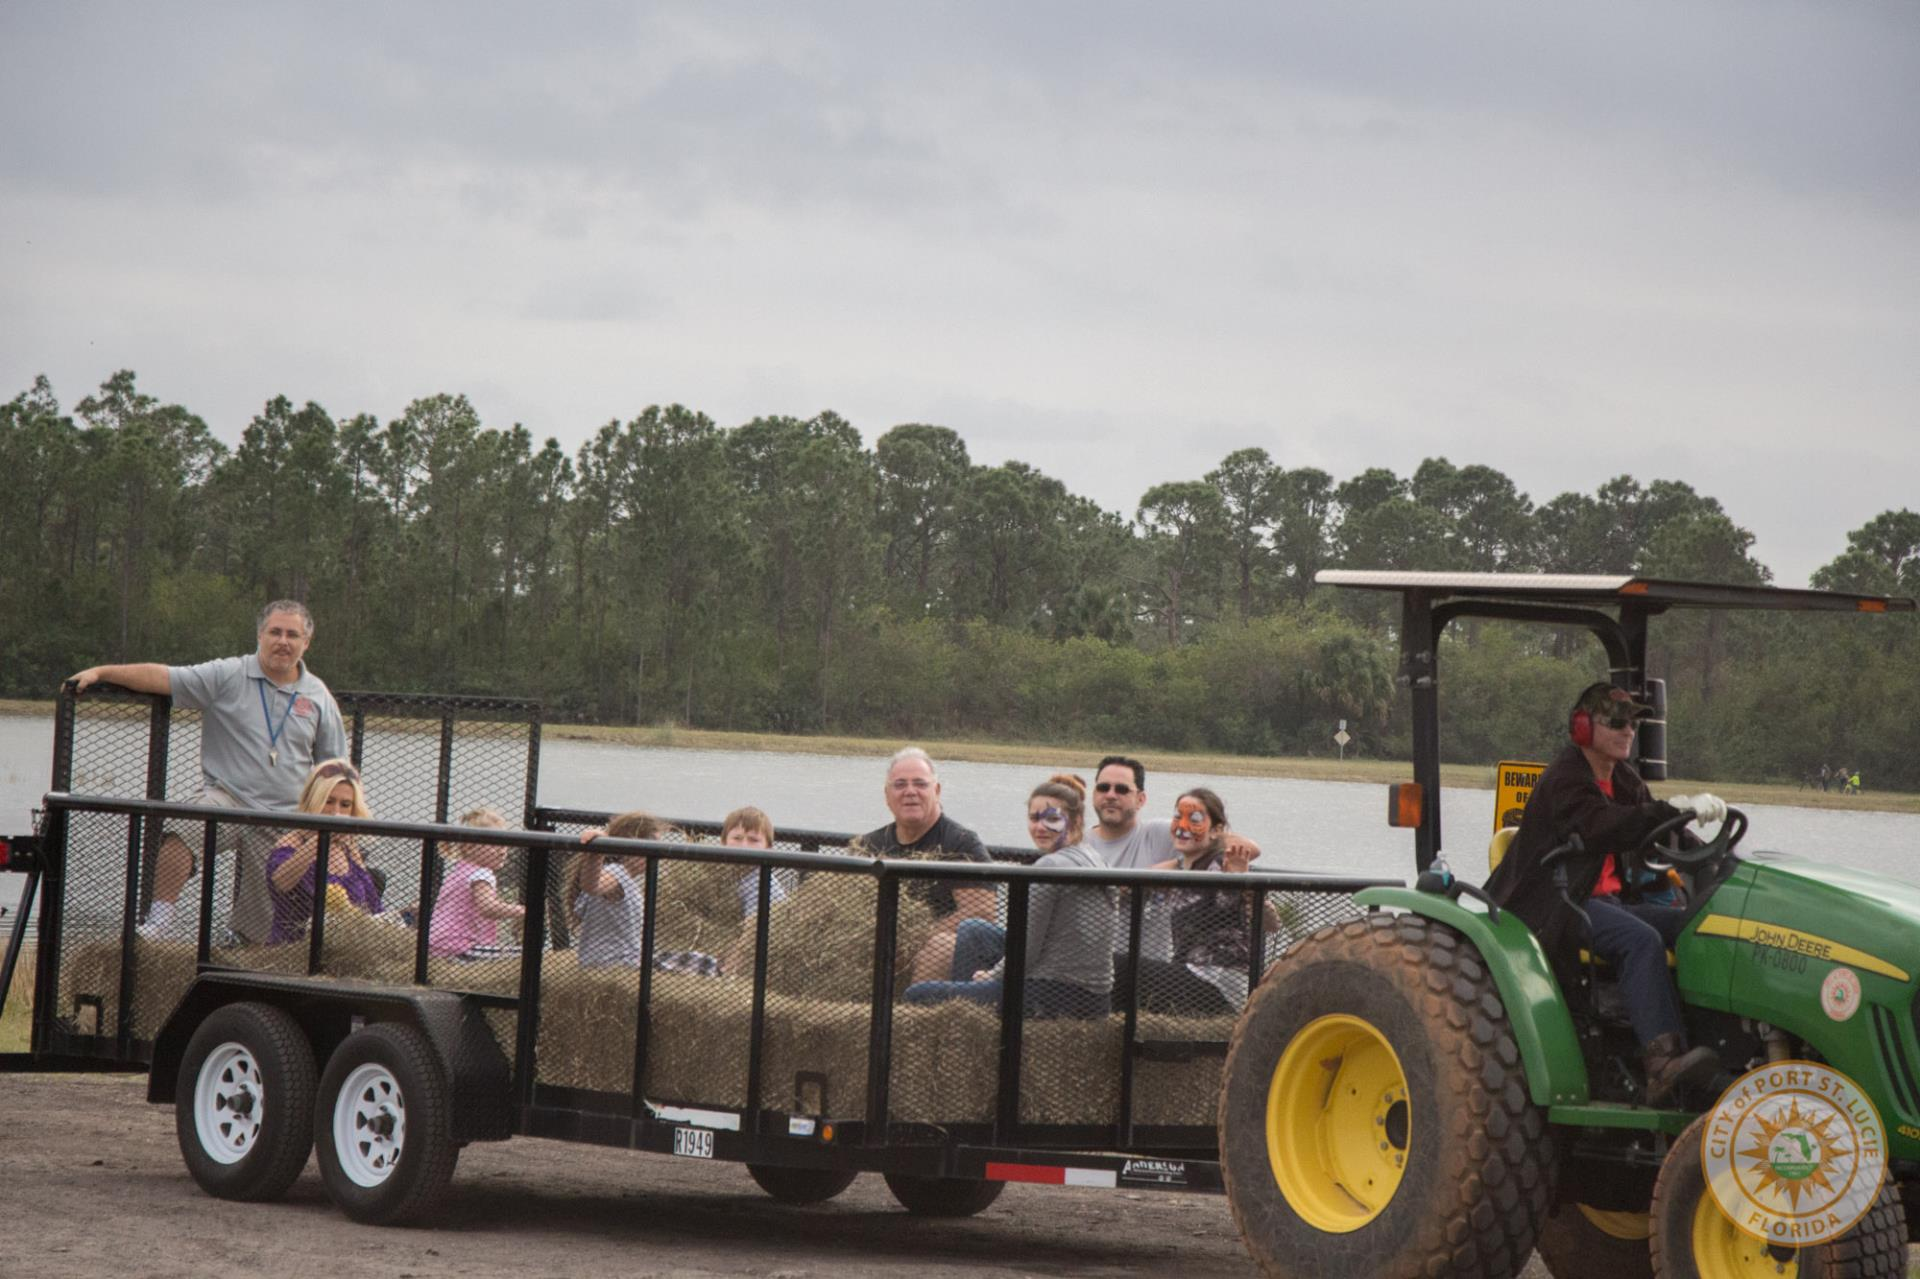 Participants riding the Hayride